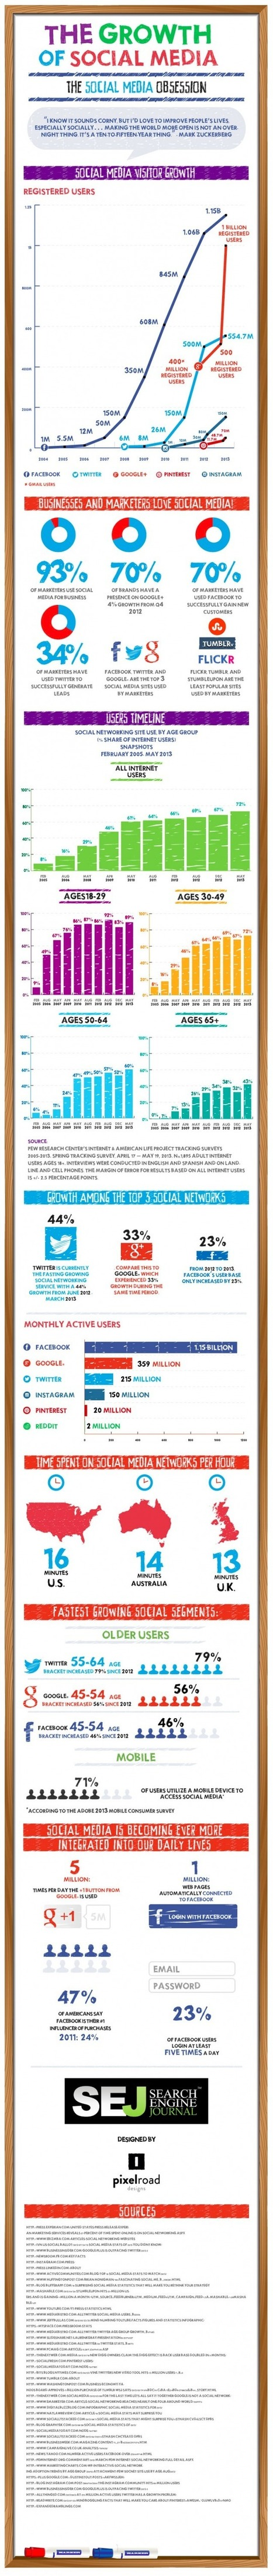 The Growth of Social Media v2.0 [INFOGRAPHIC] | Aspiring Outliers | Scoop.it